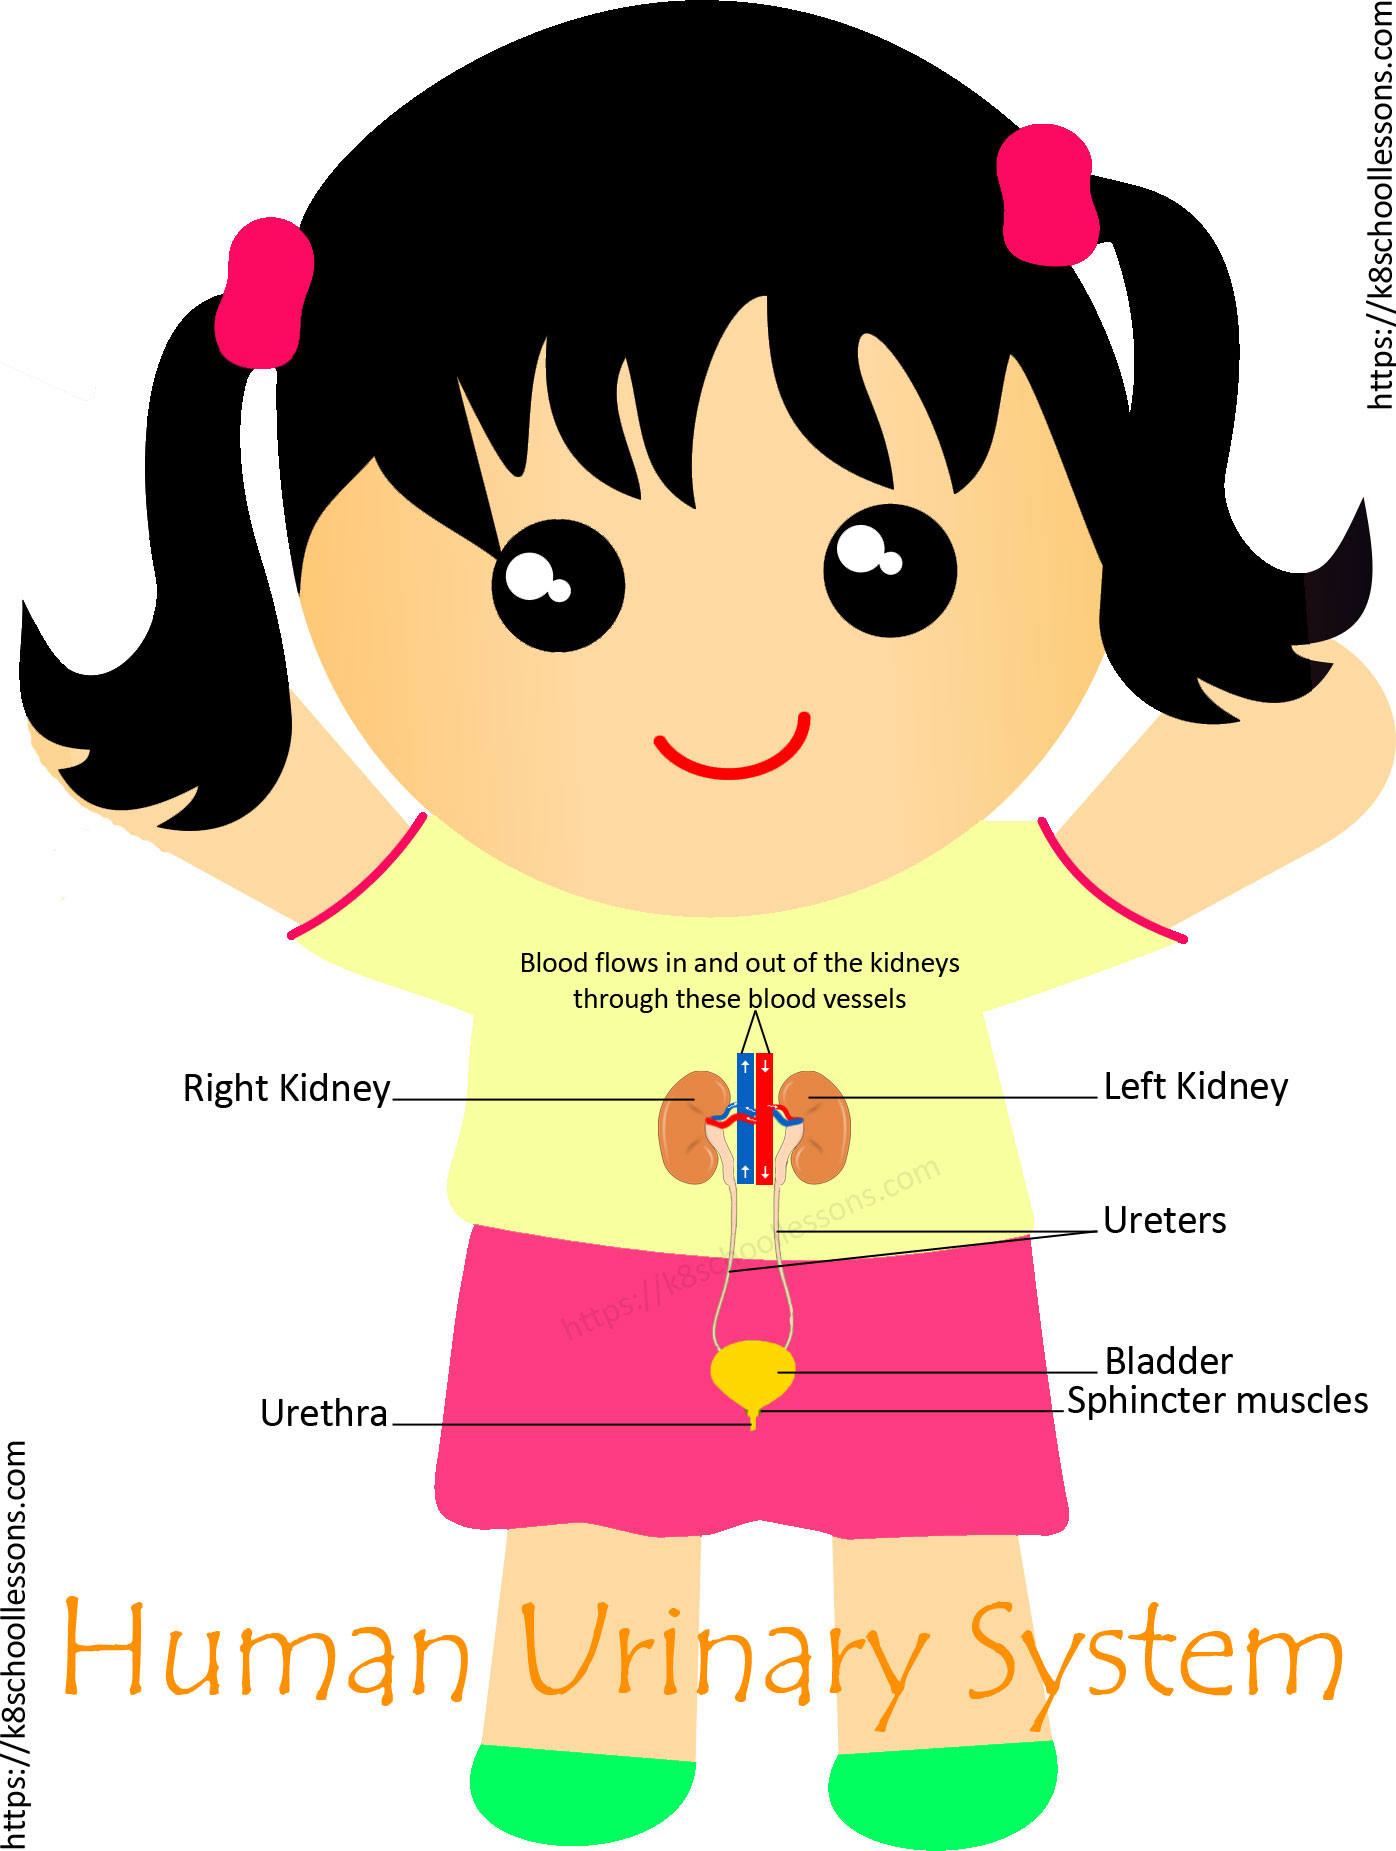 Urinary System Diagram Urinary System For Kids Human Urinary System Human Body Facts